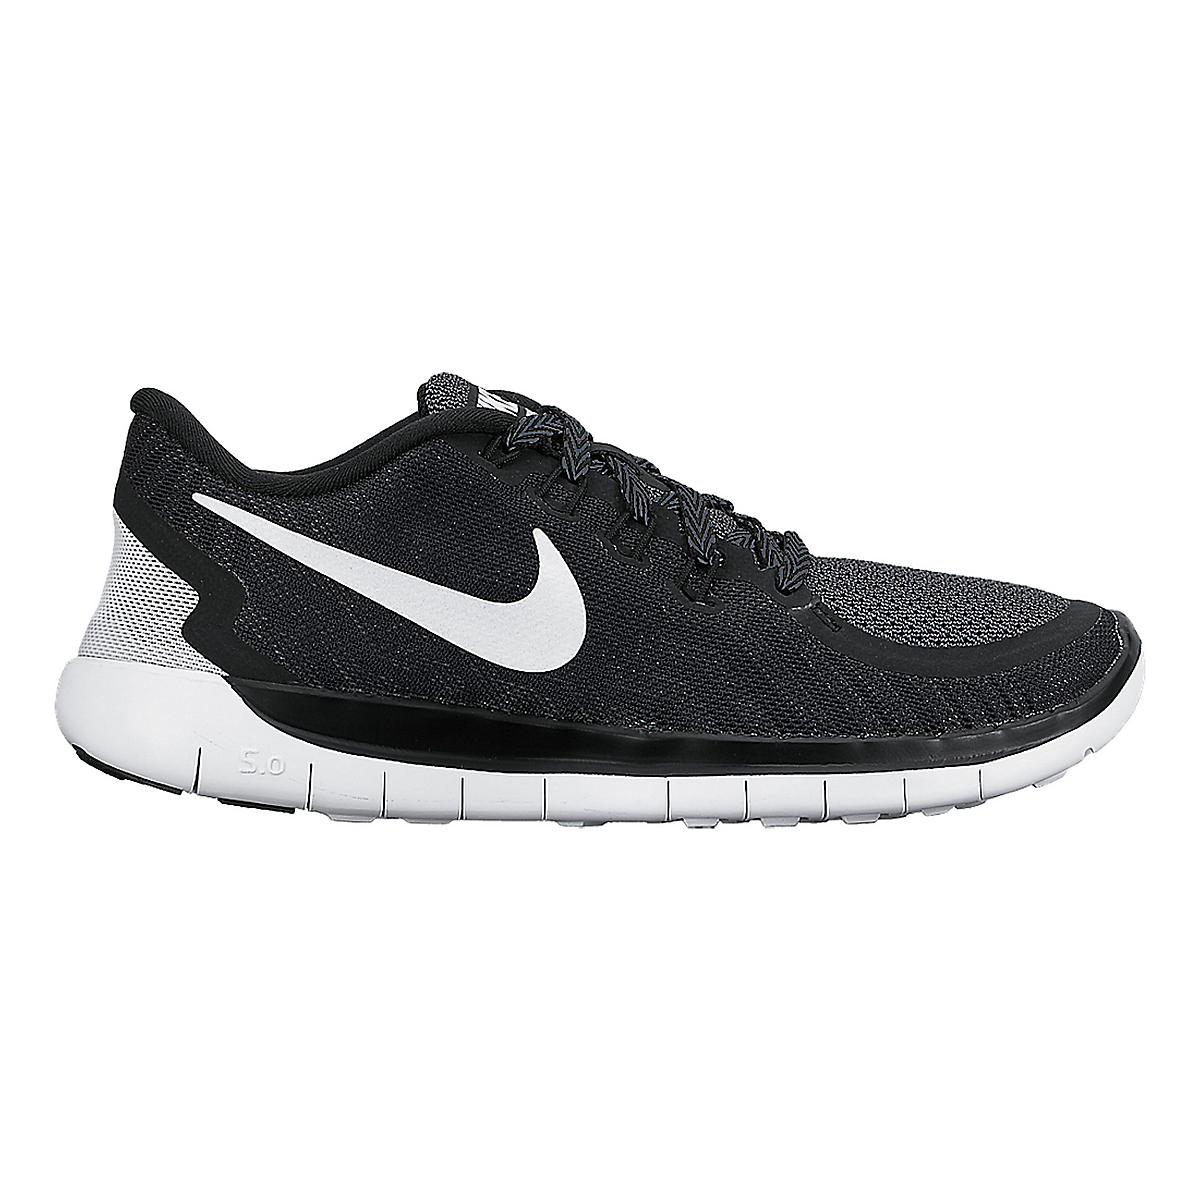 pretty nice 8e9a0 6f8bc Kids Nike Free 5.0 Running Shoe